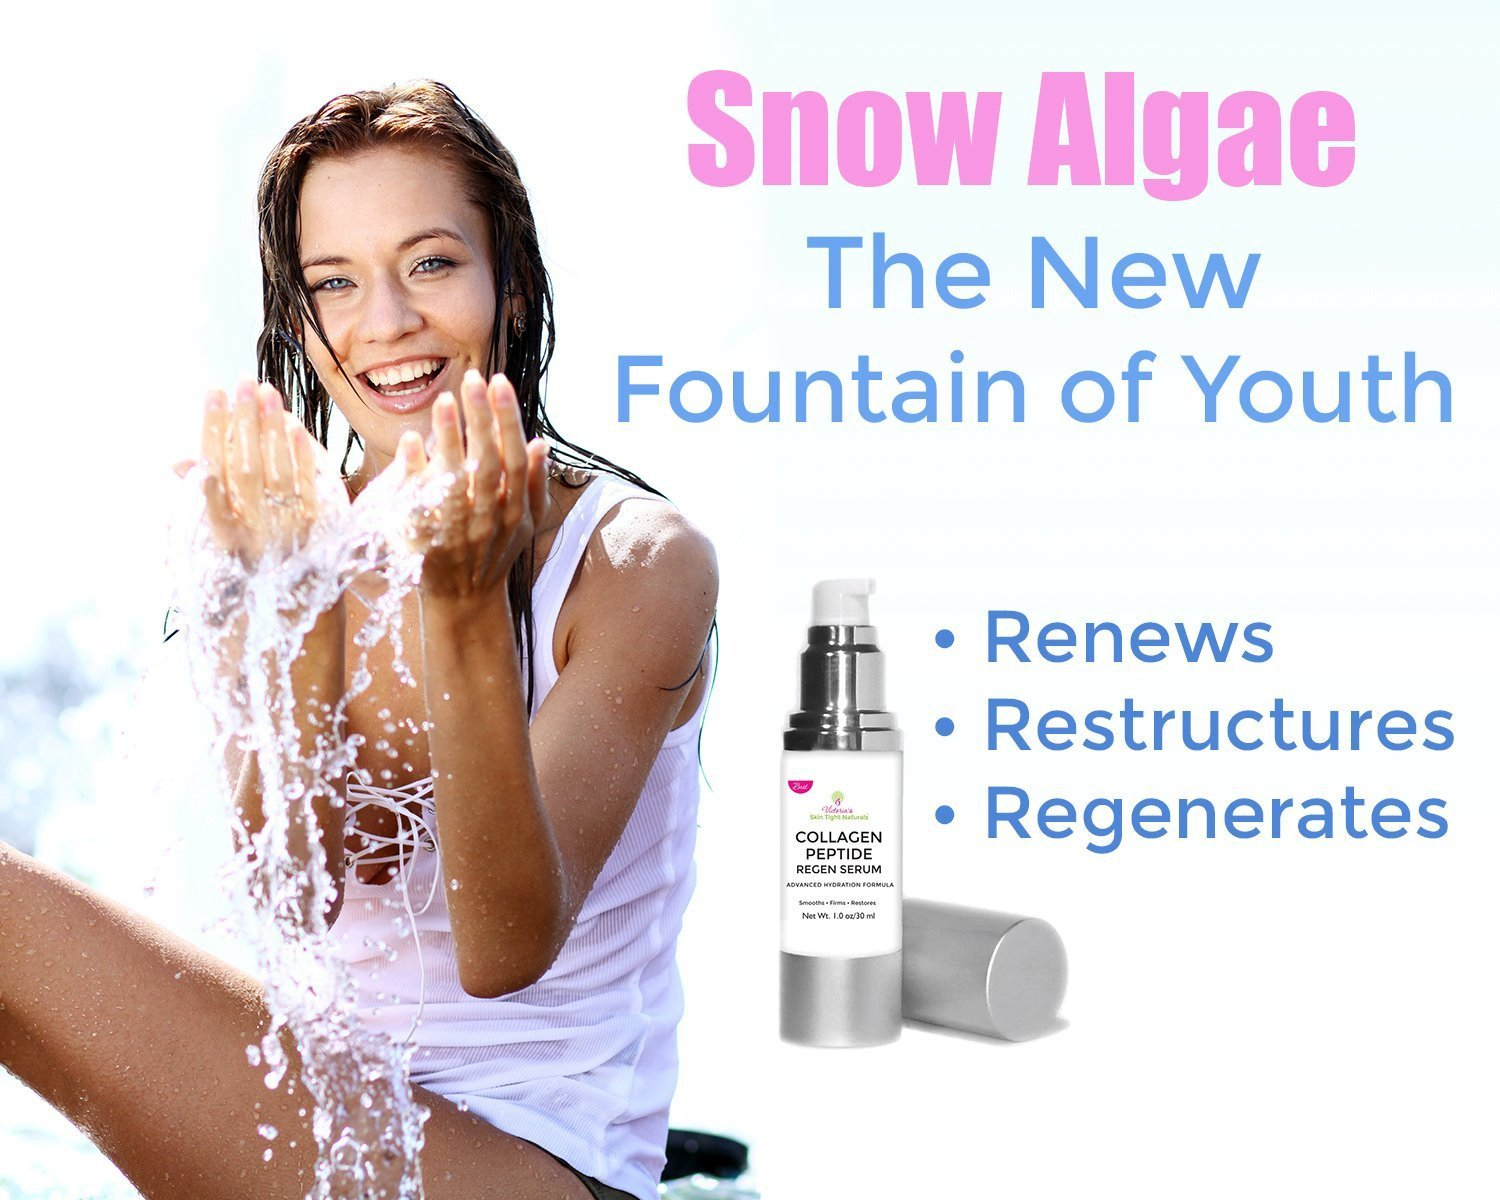 sow algae and collagen peptides skin tightening